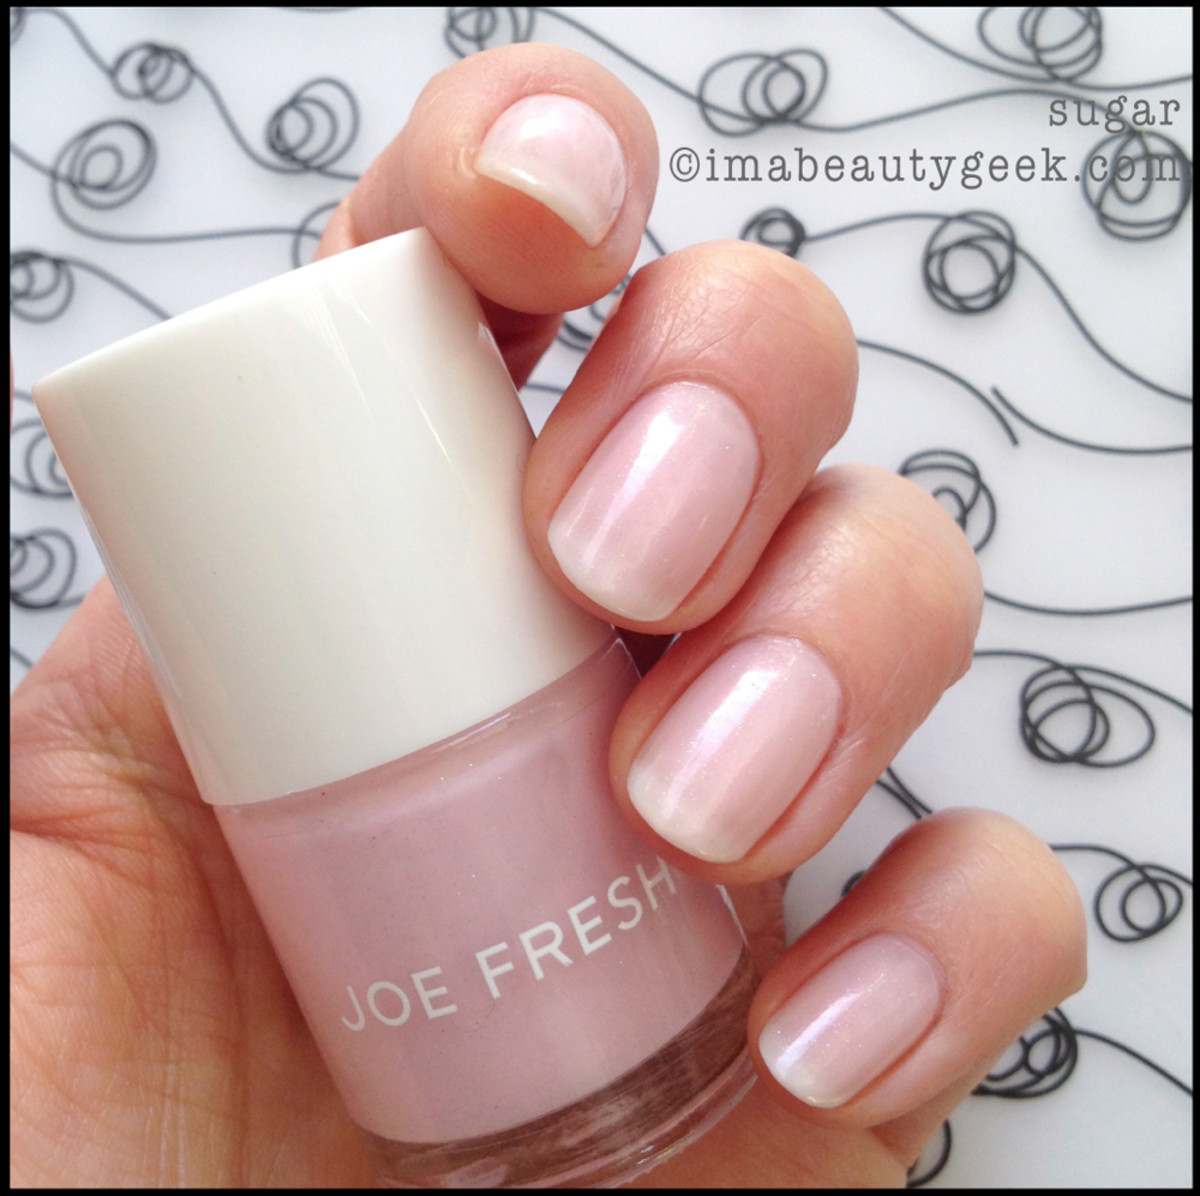 Joe Fresh Polish Sugar